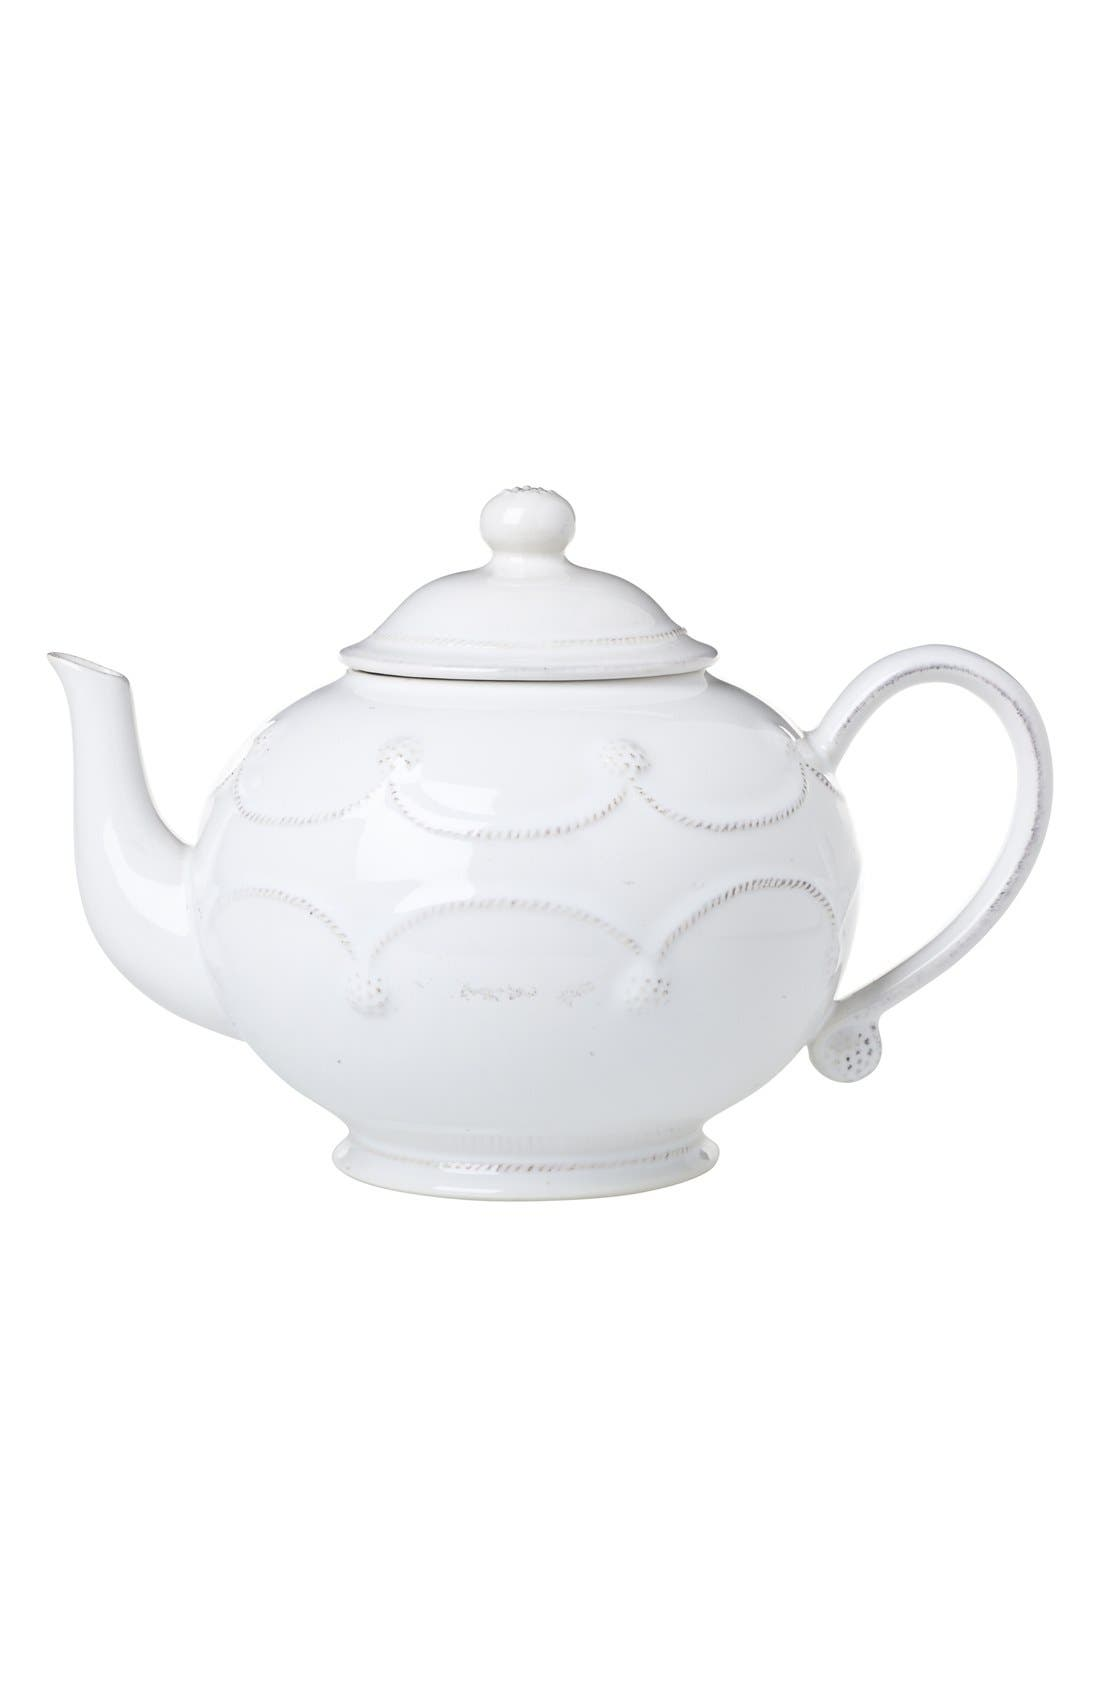 'Berry and Thread' Ceramic Teapot,                         Main,                         color, 100